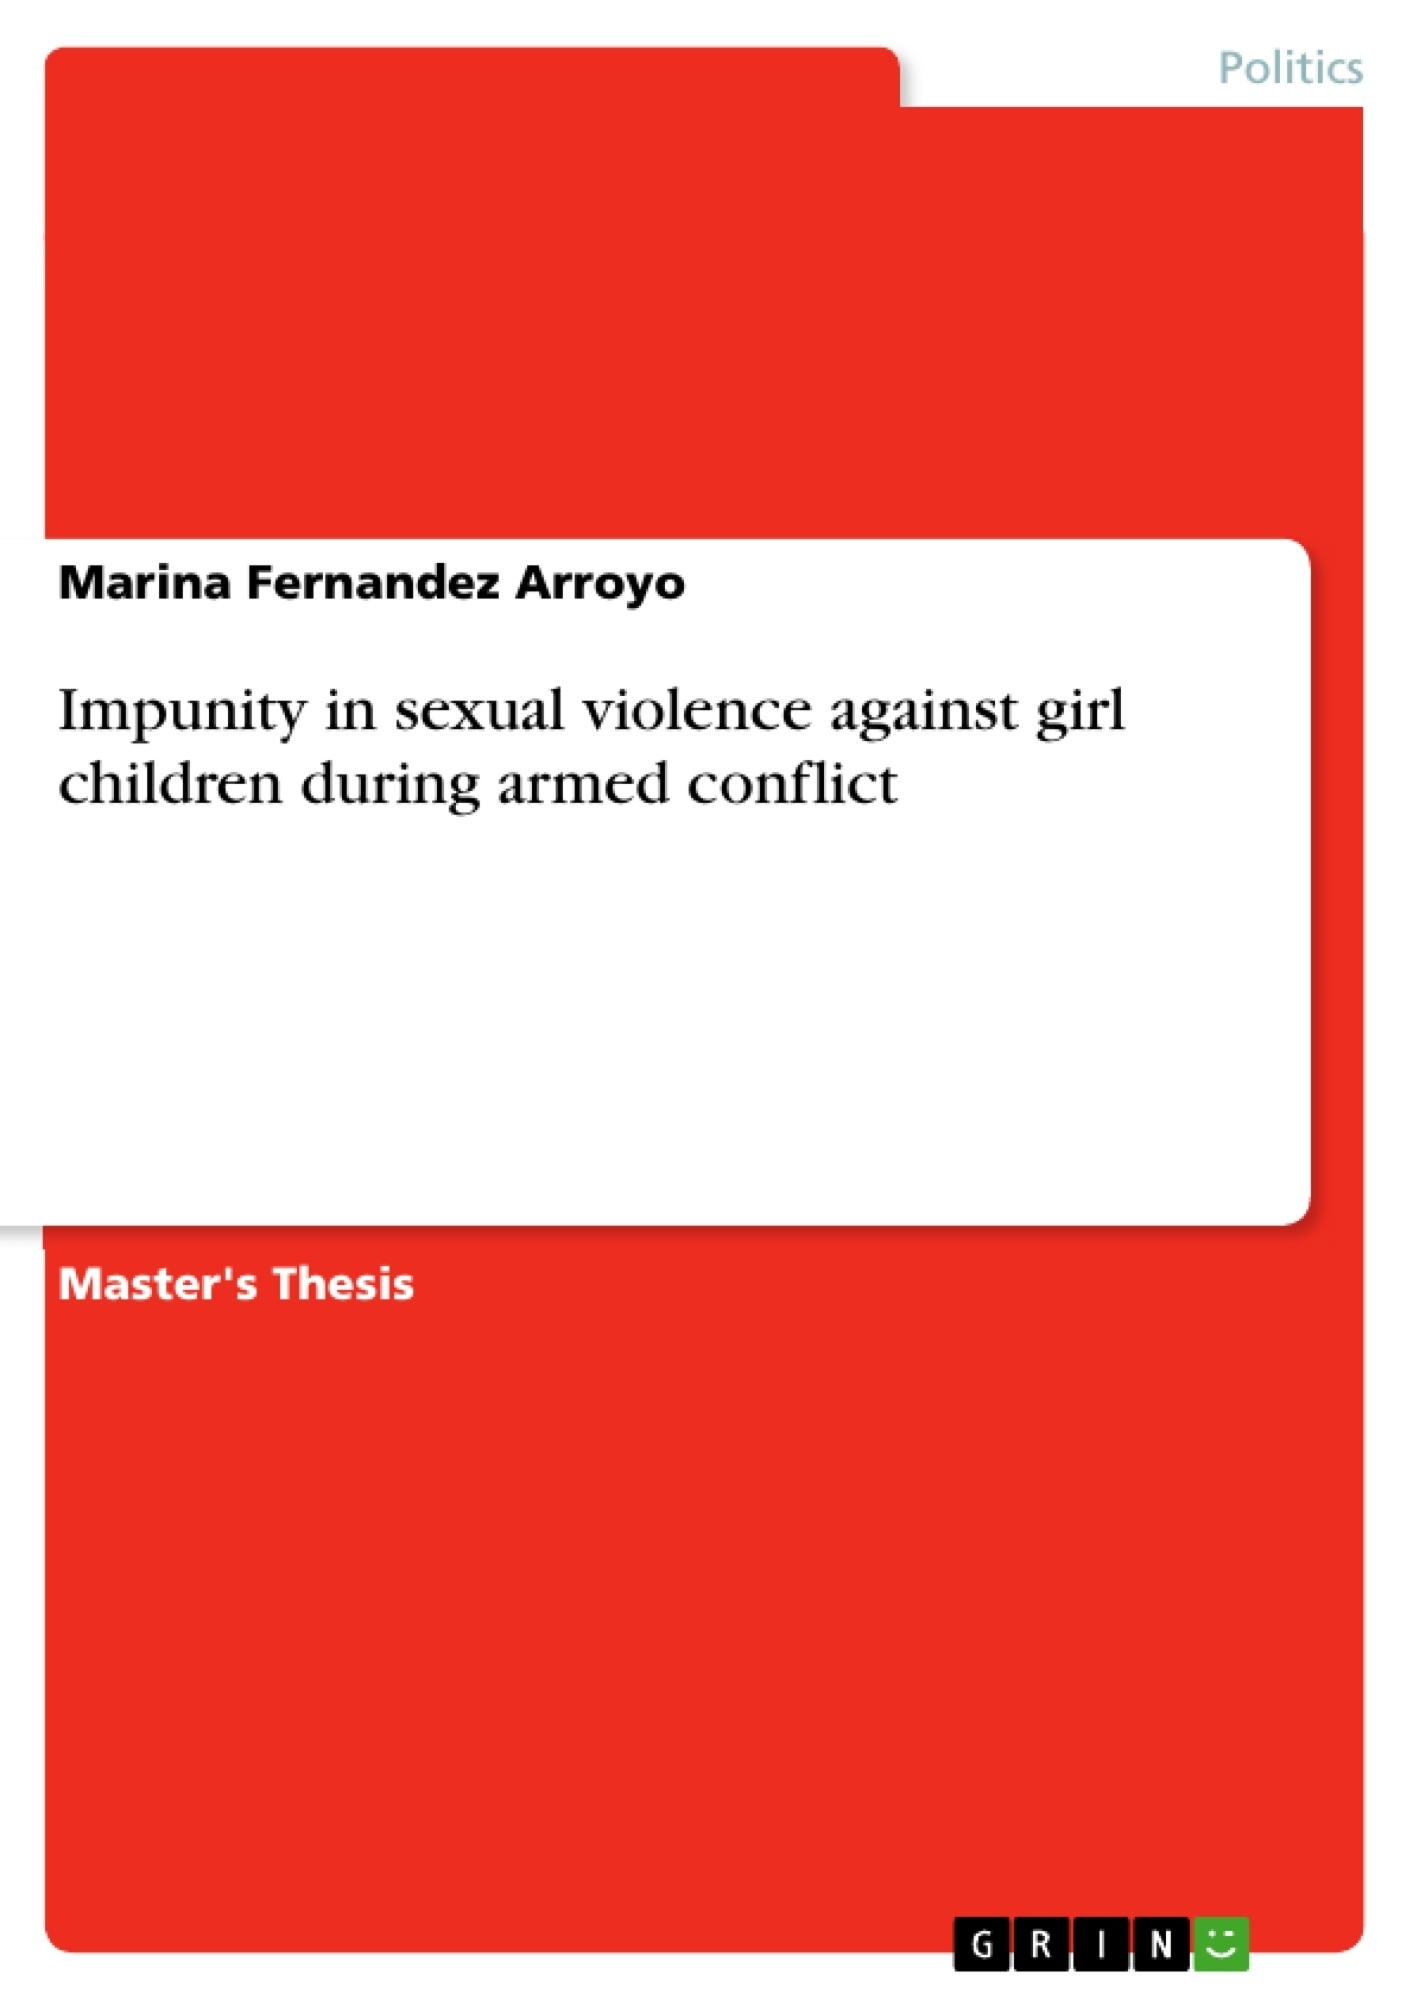 Title: Impunity in sexual violence against girl children during armed conflict